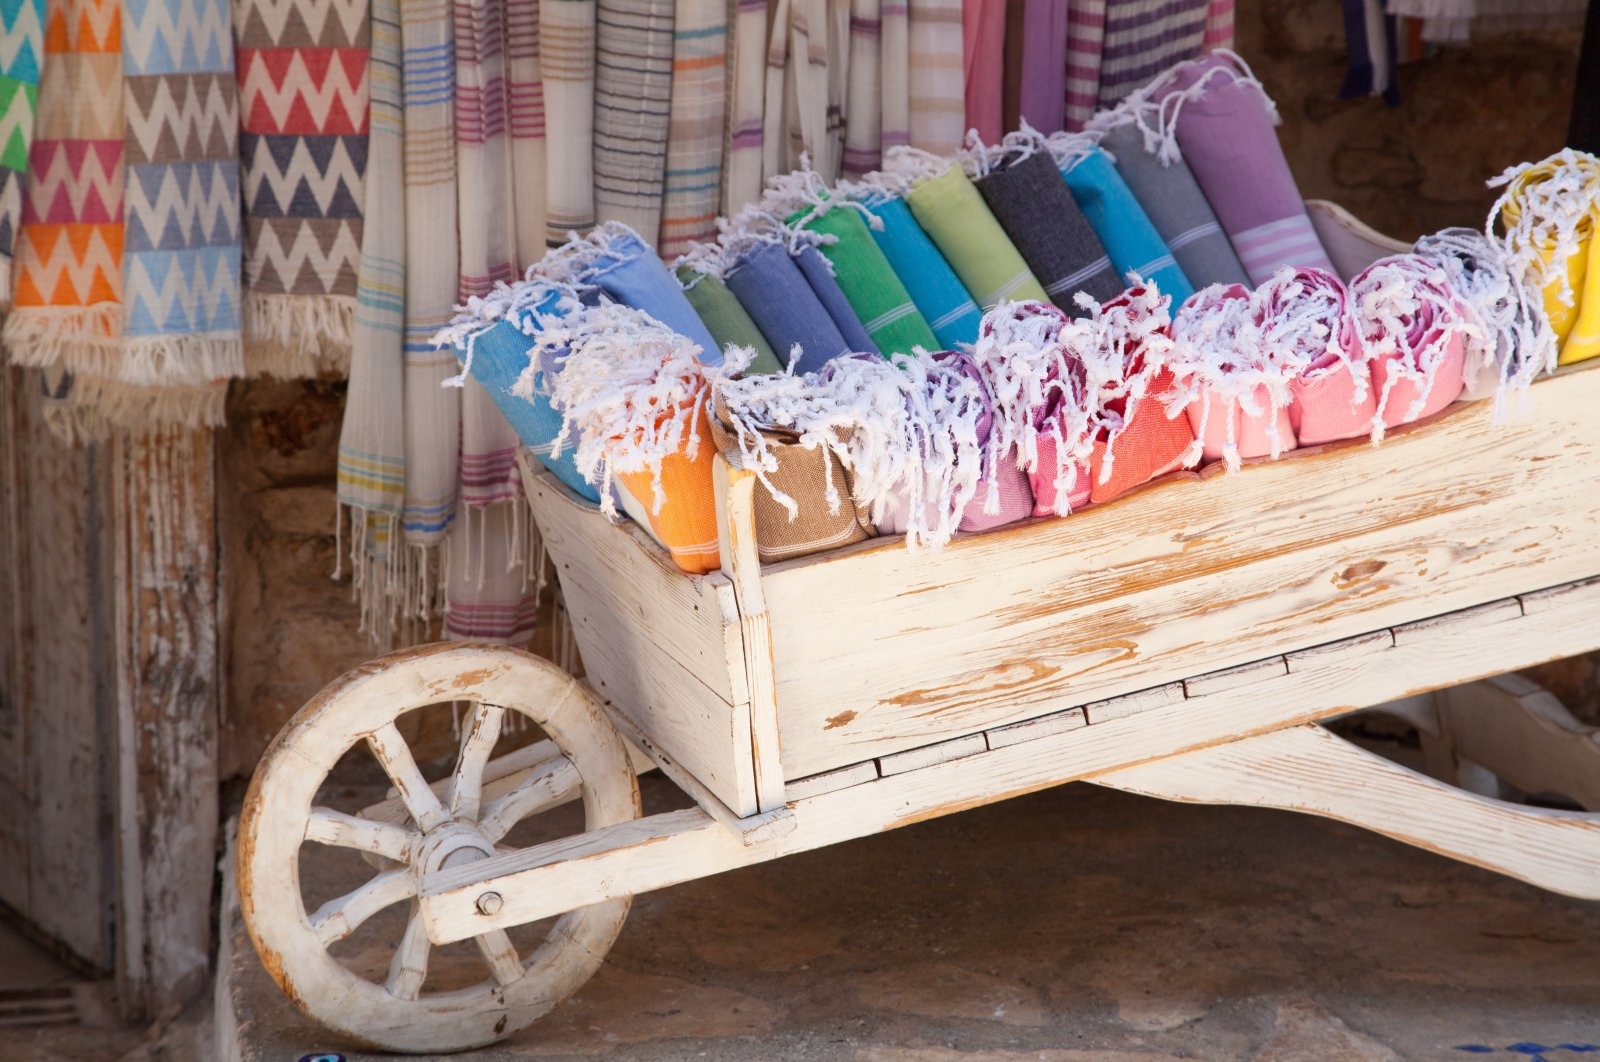 Multicolored Turkish bath towels in a wooden cart. (Shutterstock Photo)